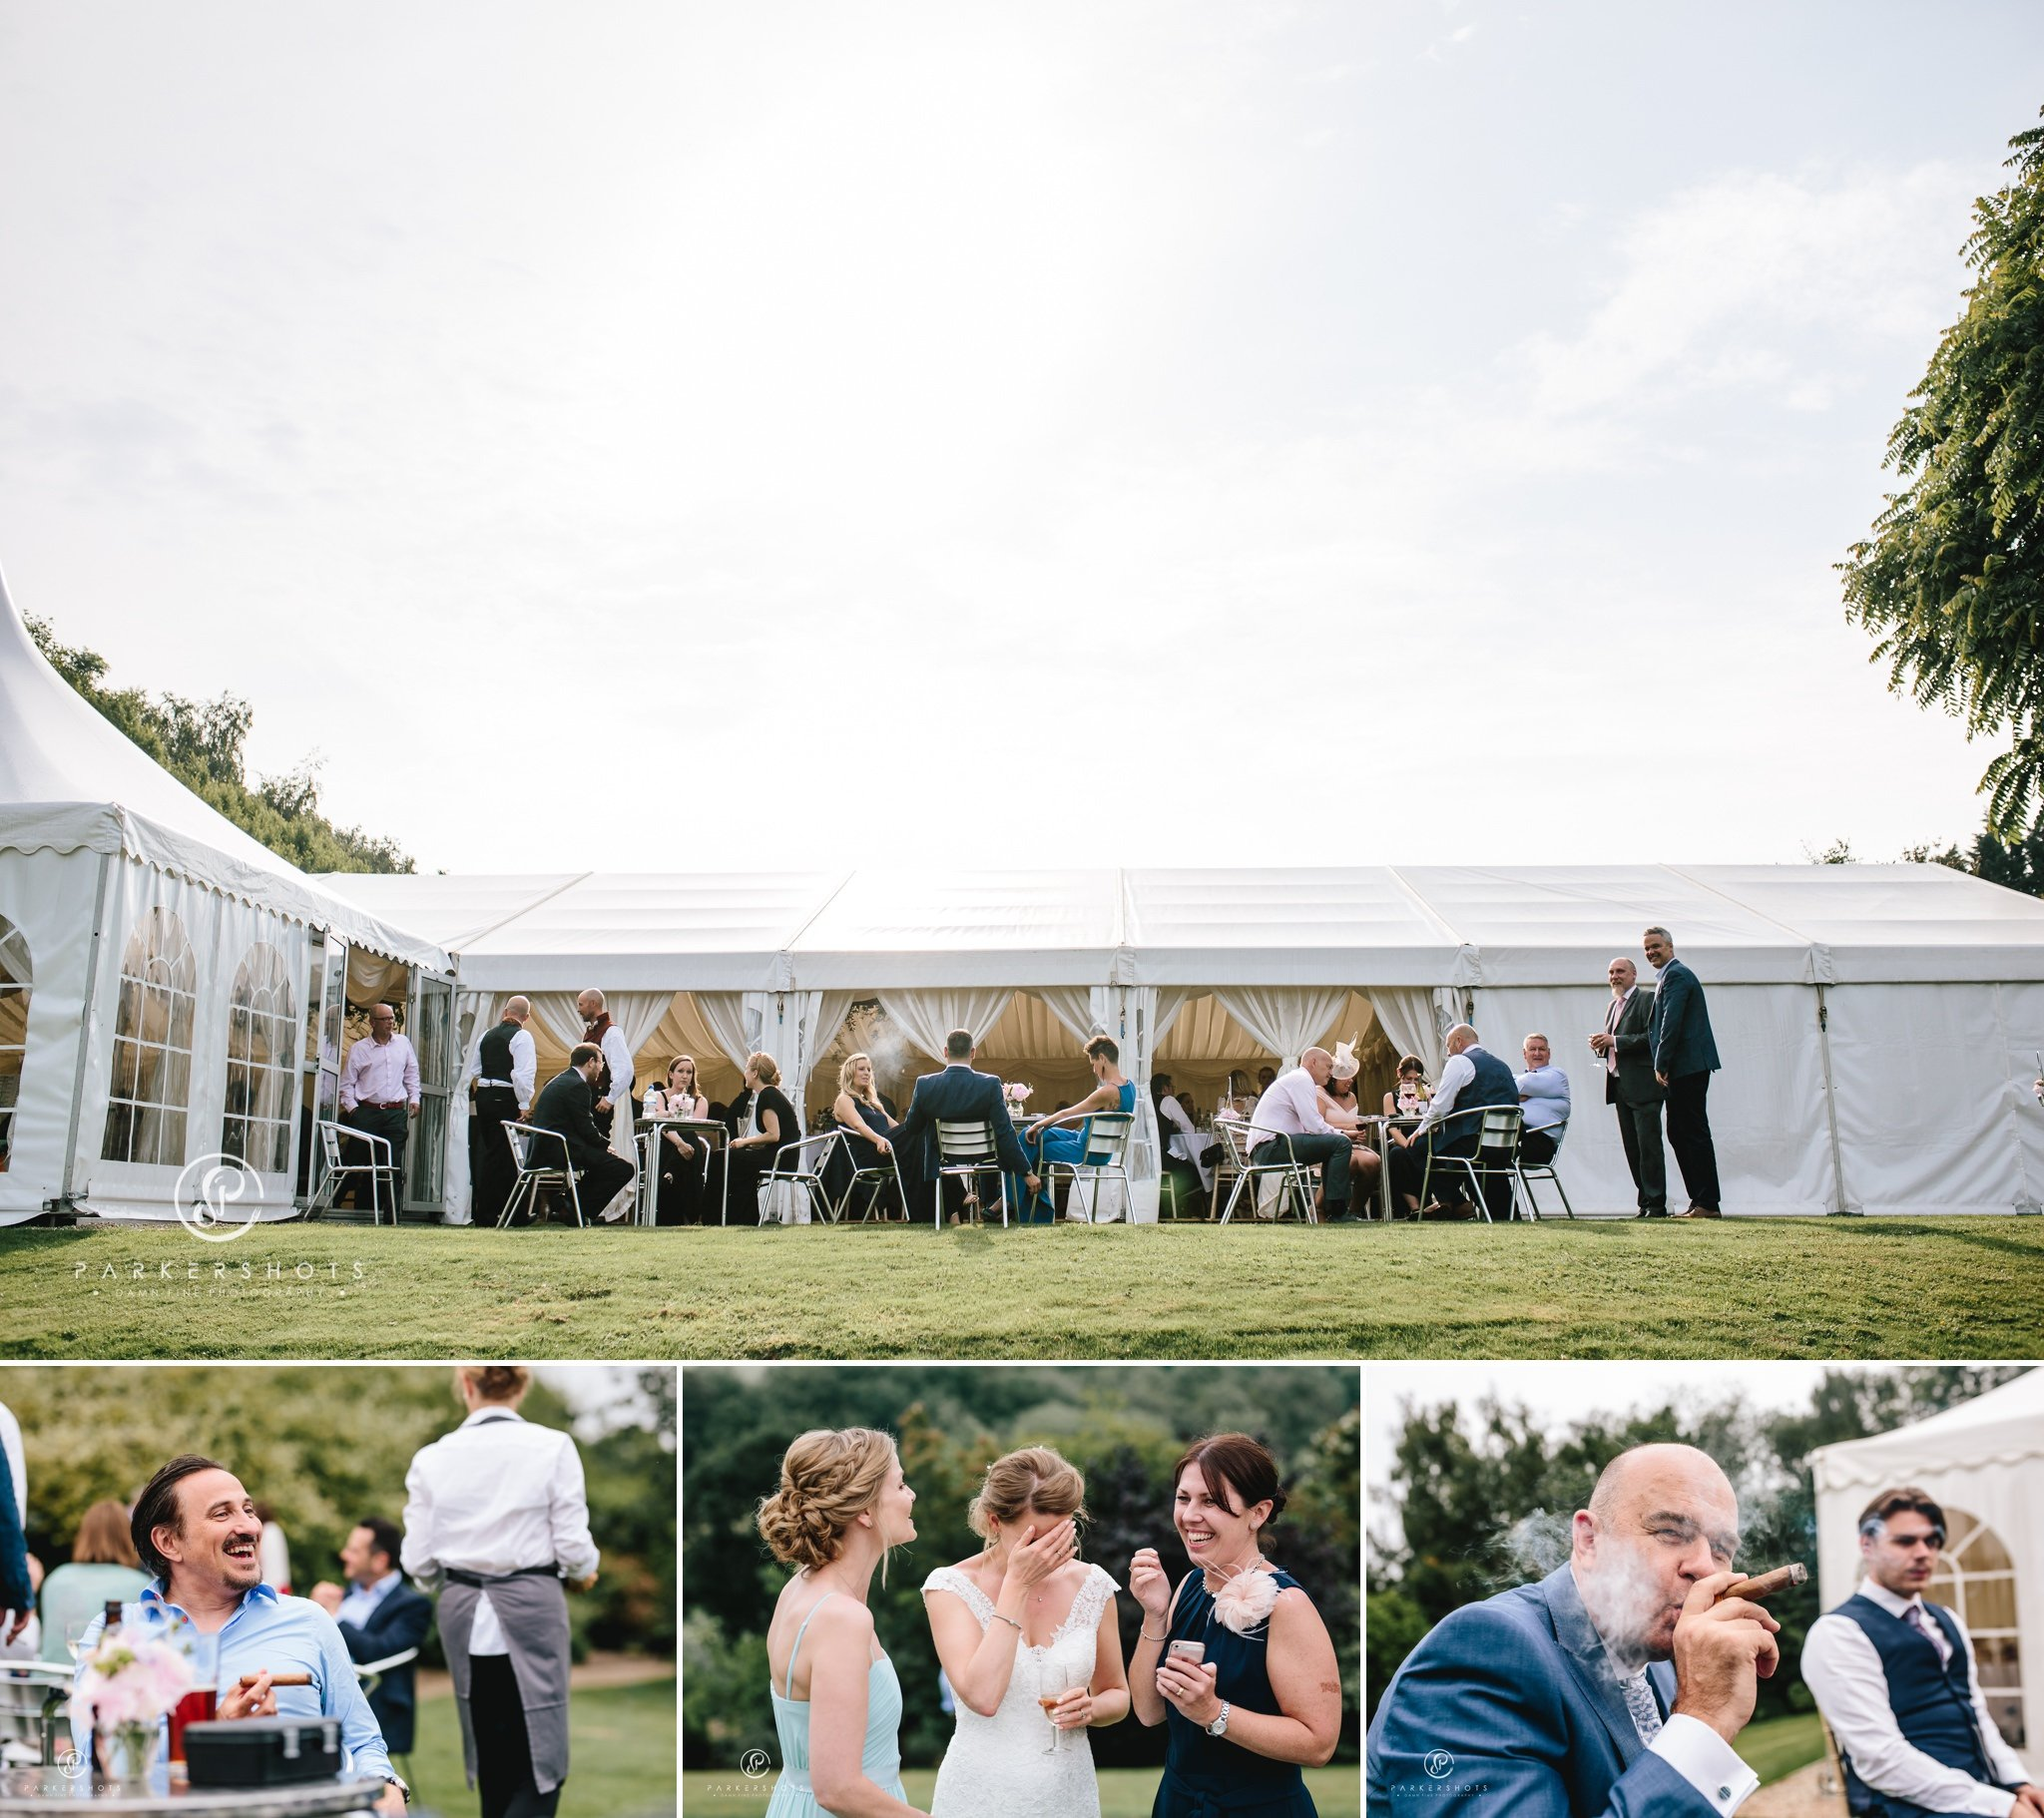 Wedding guests enjoying themselves at Nettlestead Place